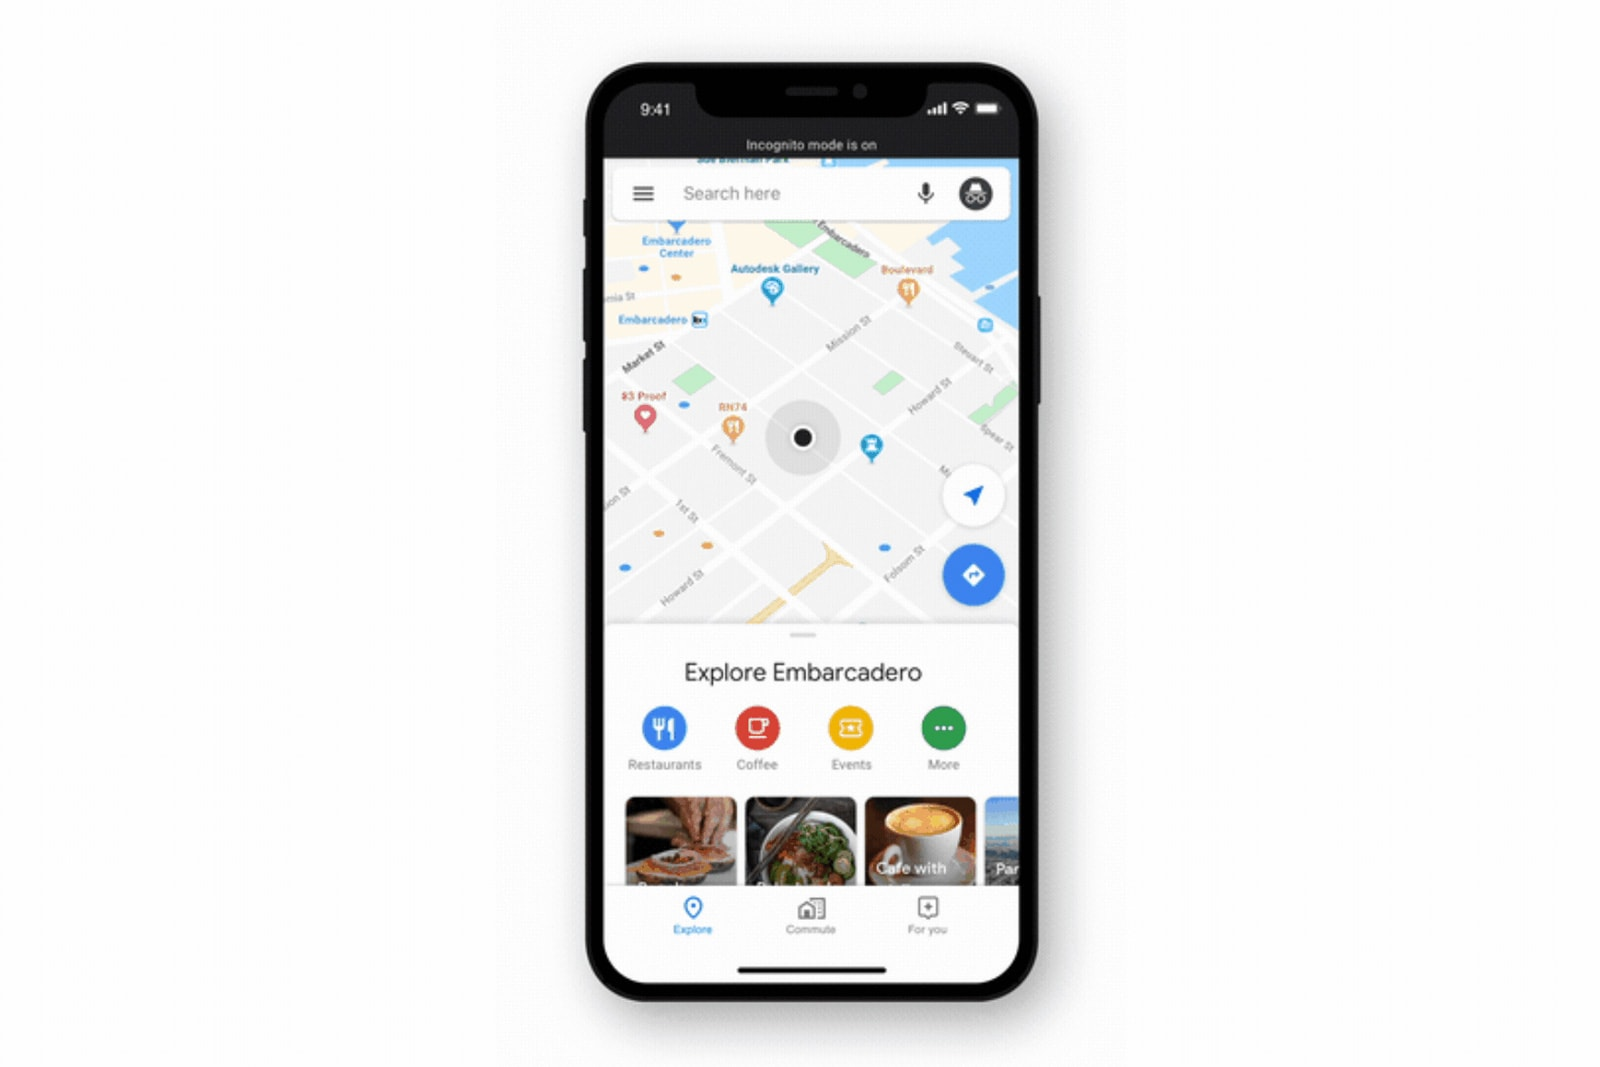 Google Maps for iOS gets Incognito Mode